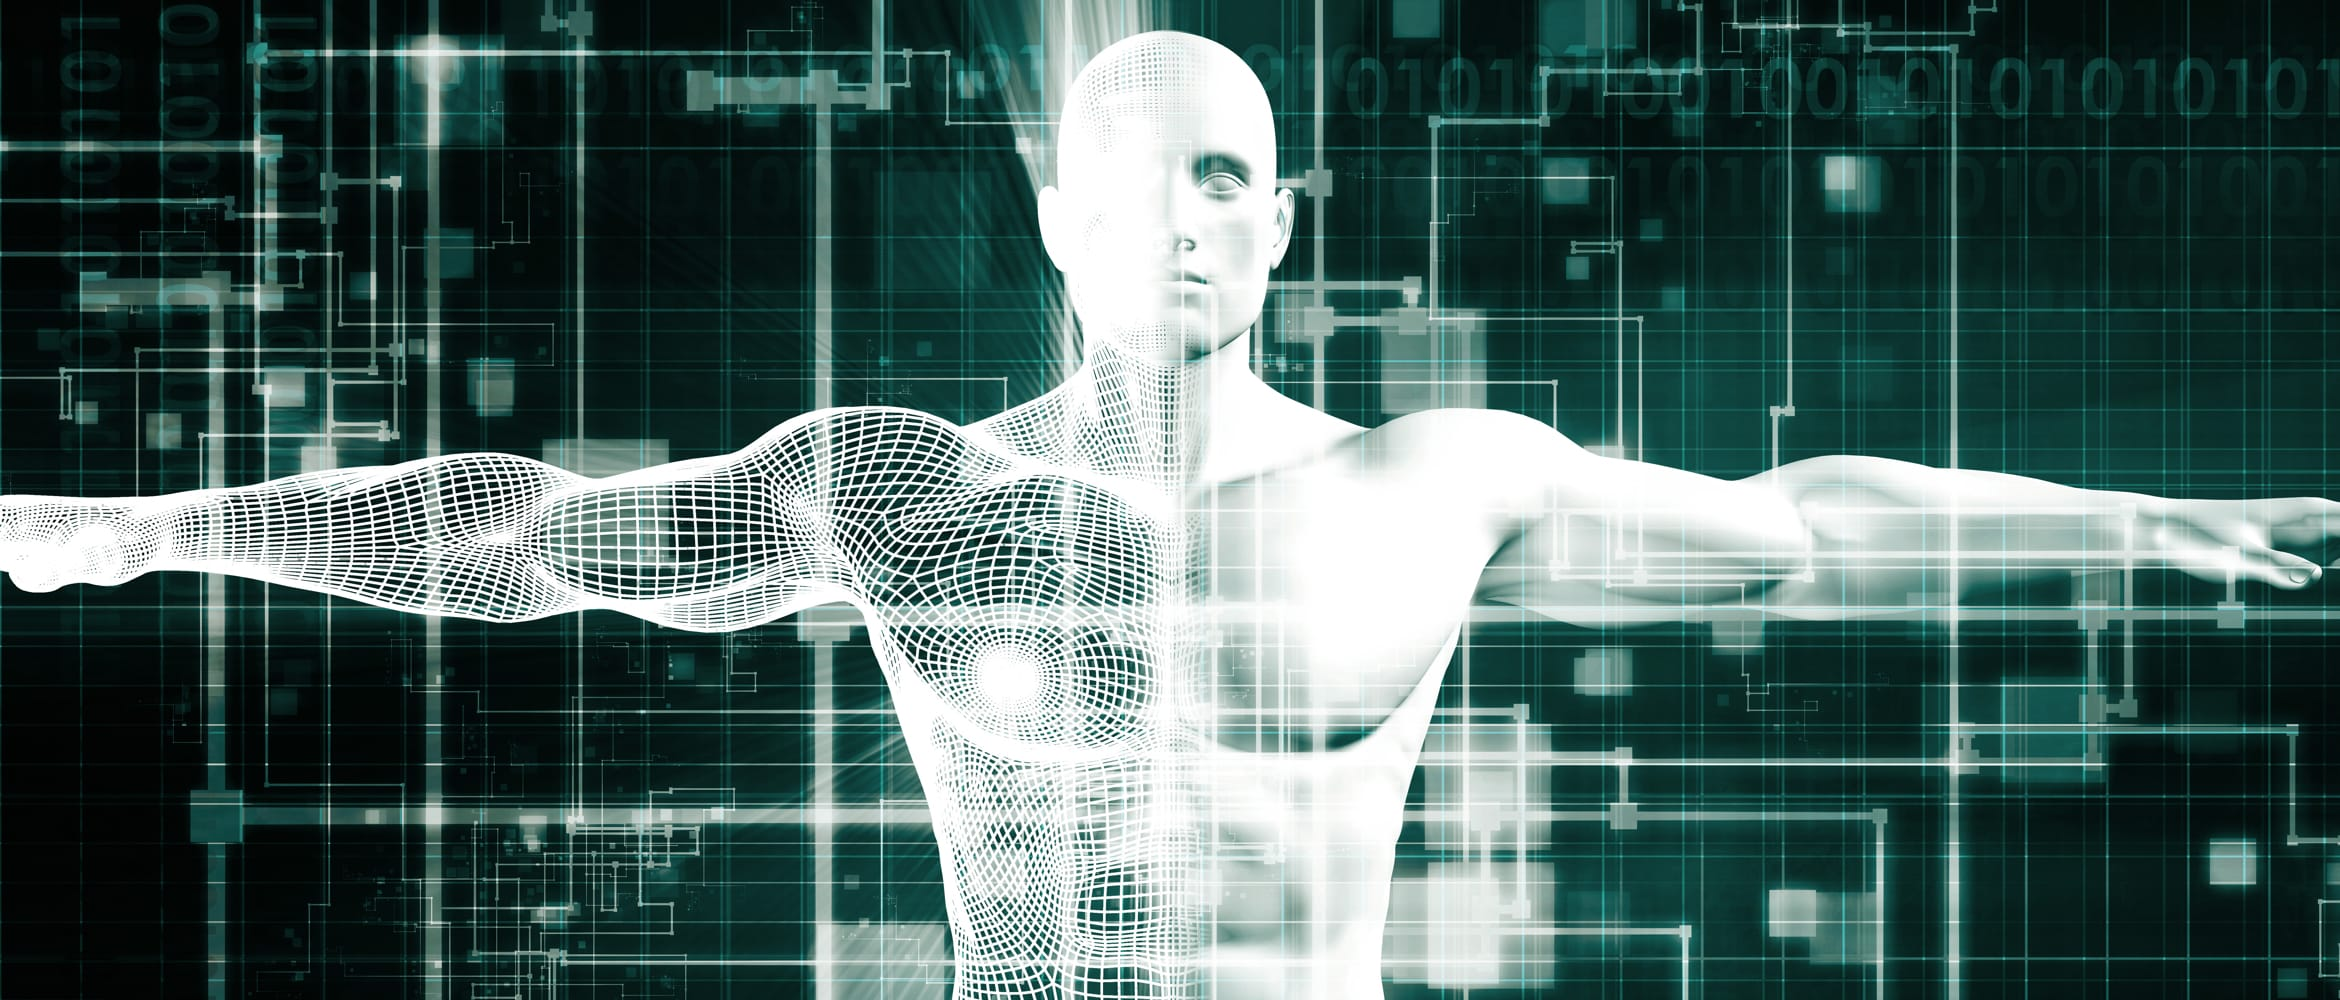 holographic representation of human body to highlight digital analytical advances in healthcare